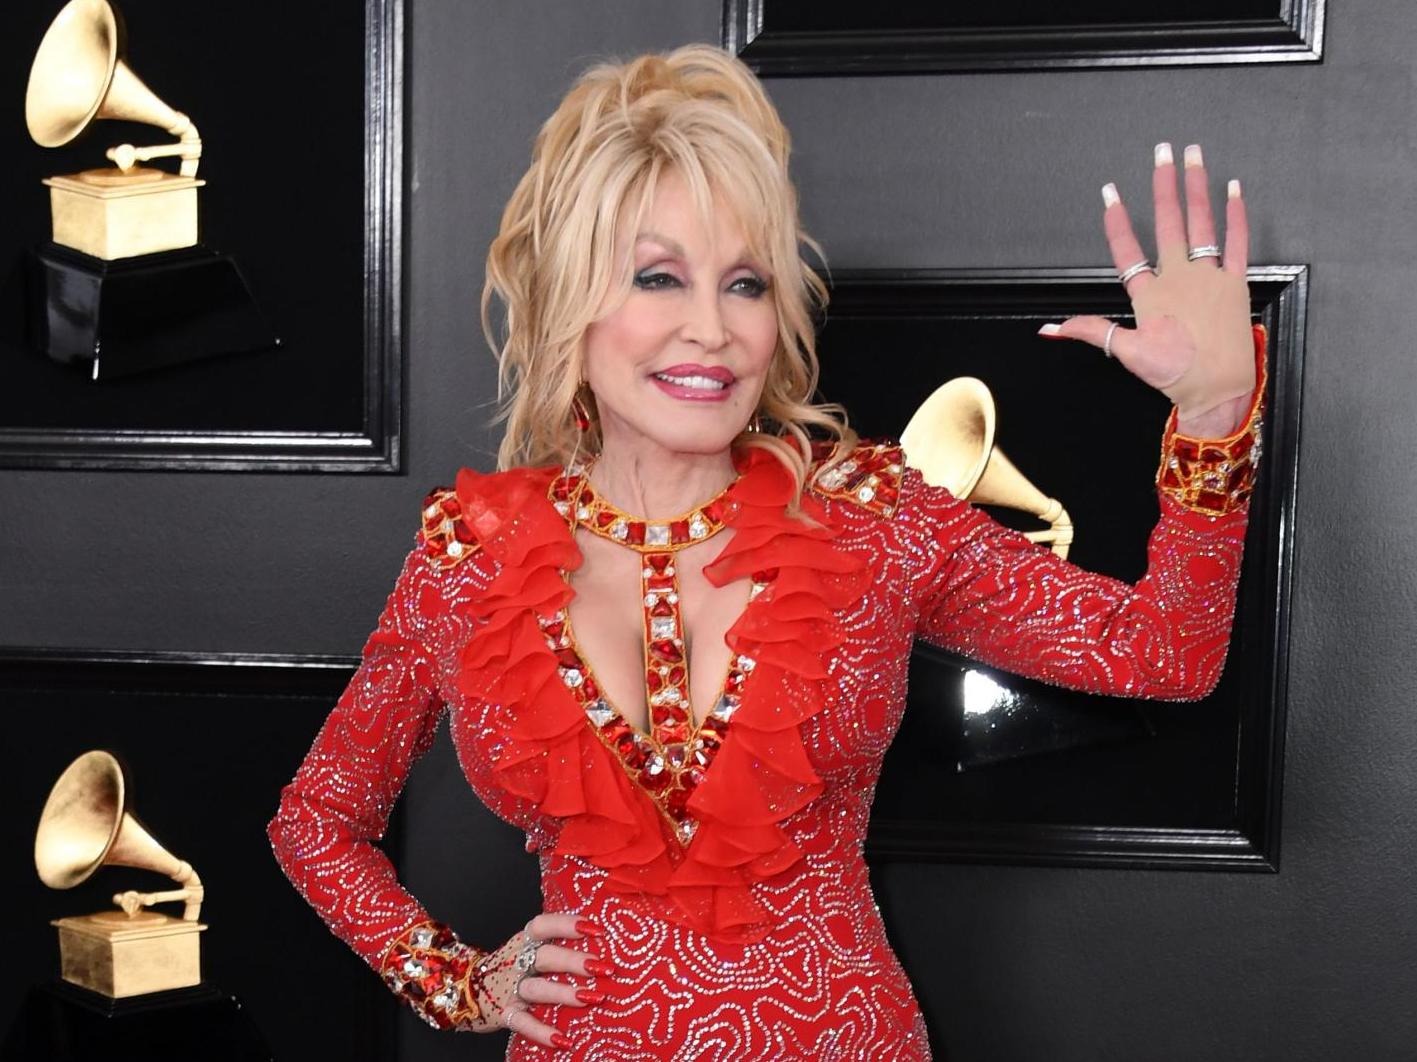 Dolly Parton Discusses Dangers Of Body Image Pressures On Young